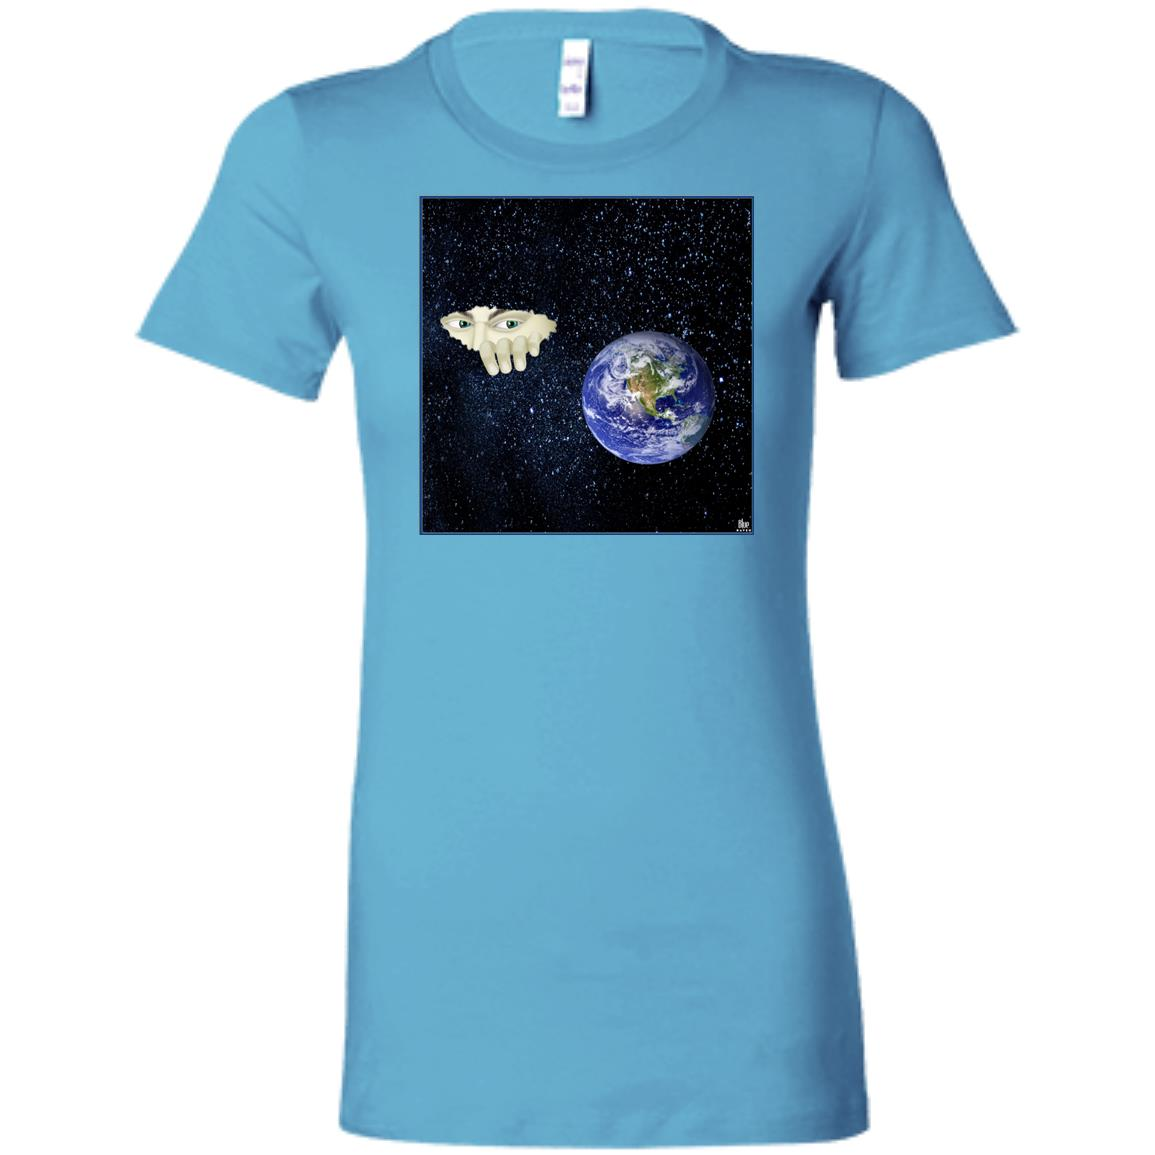 SOMEWHERE OUT THERE - Women's Fitted T-Shirt